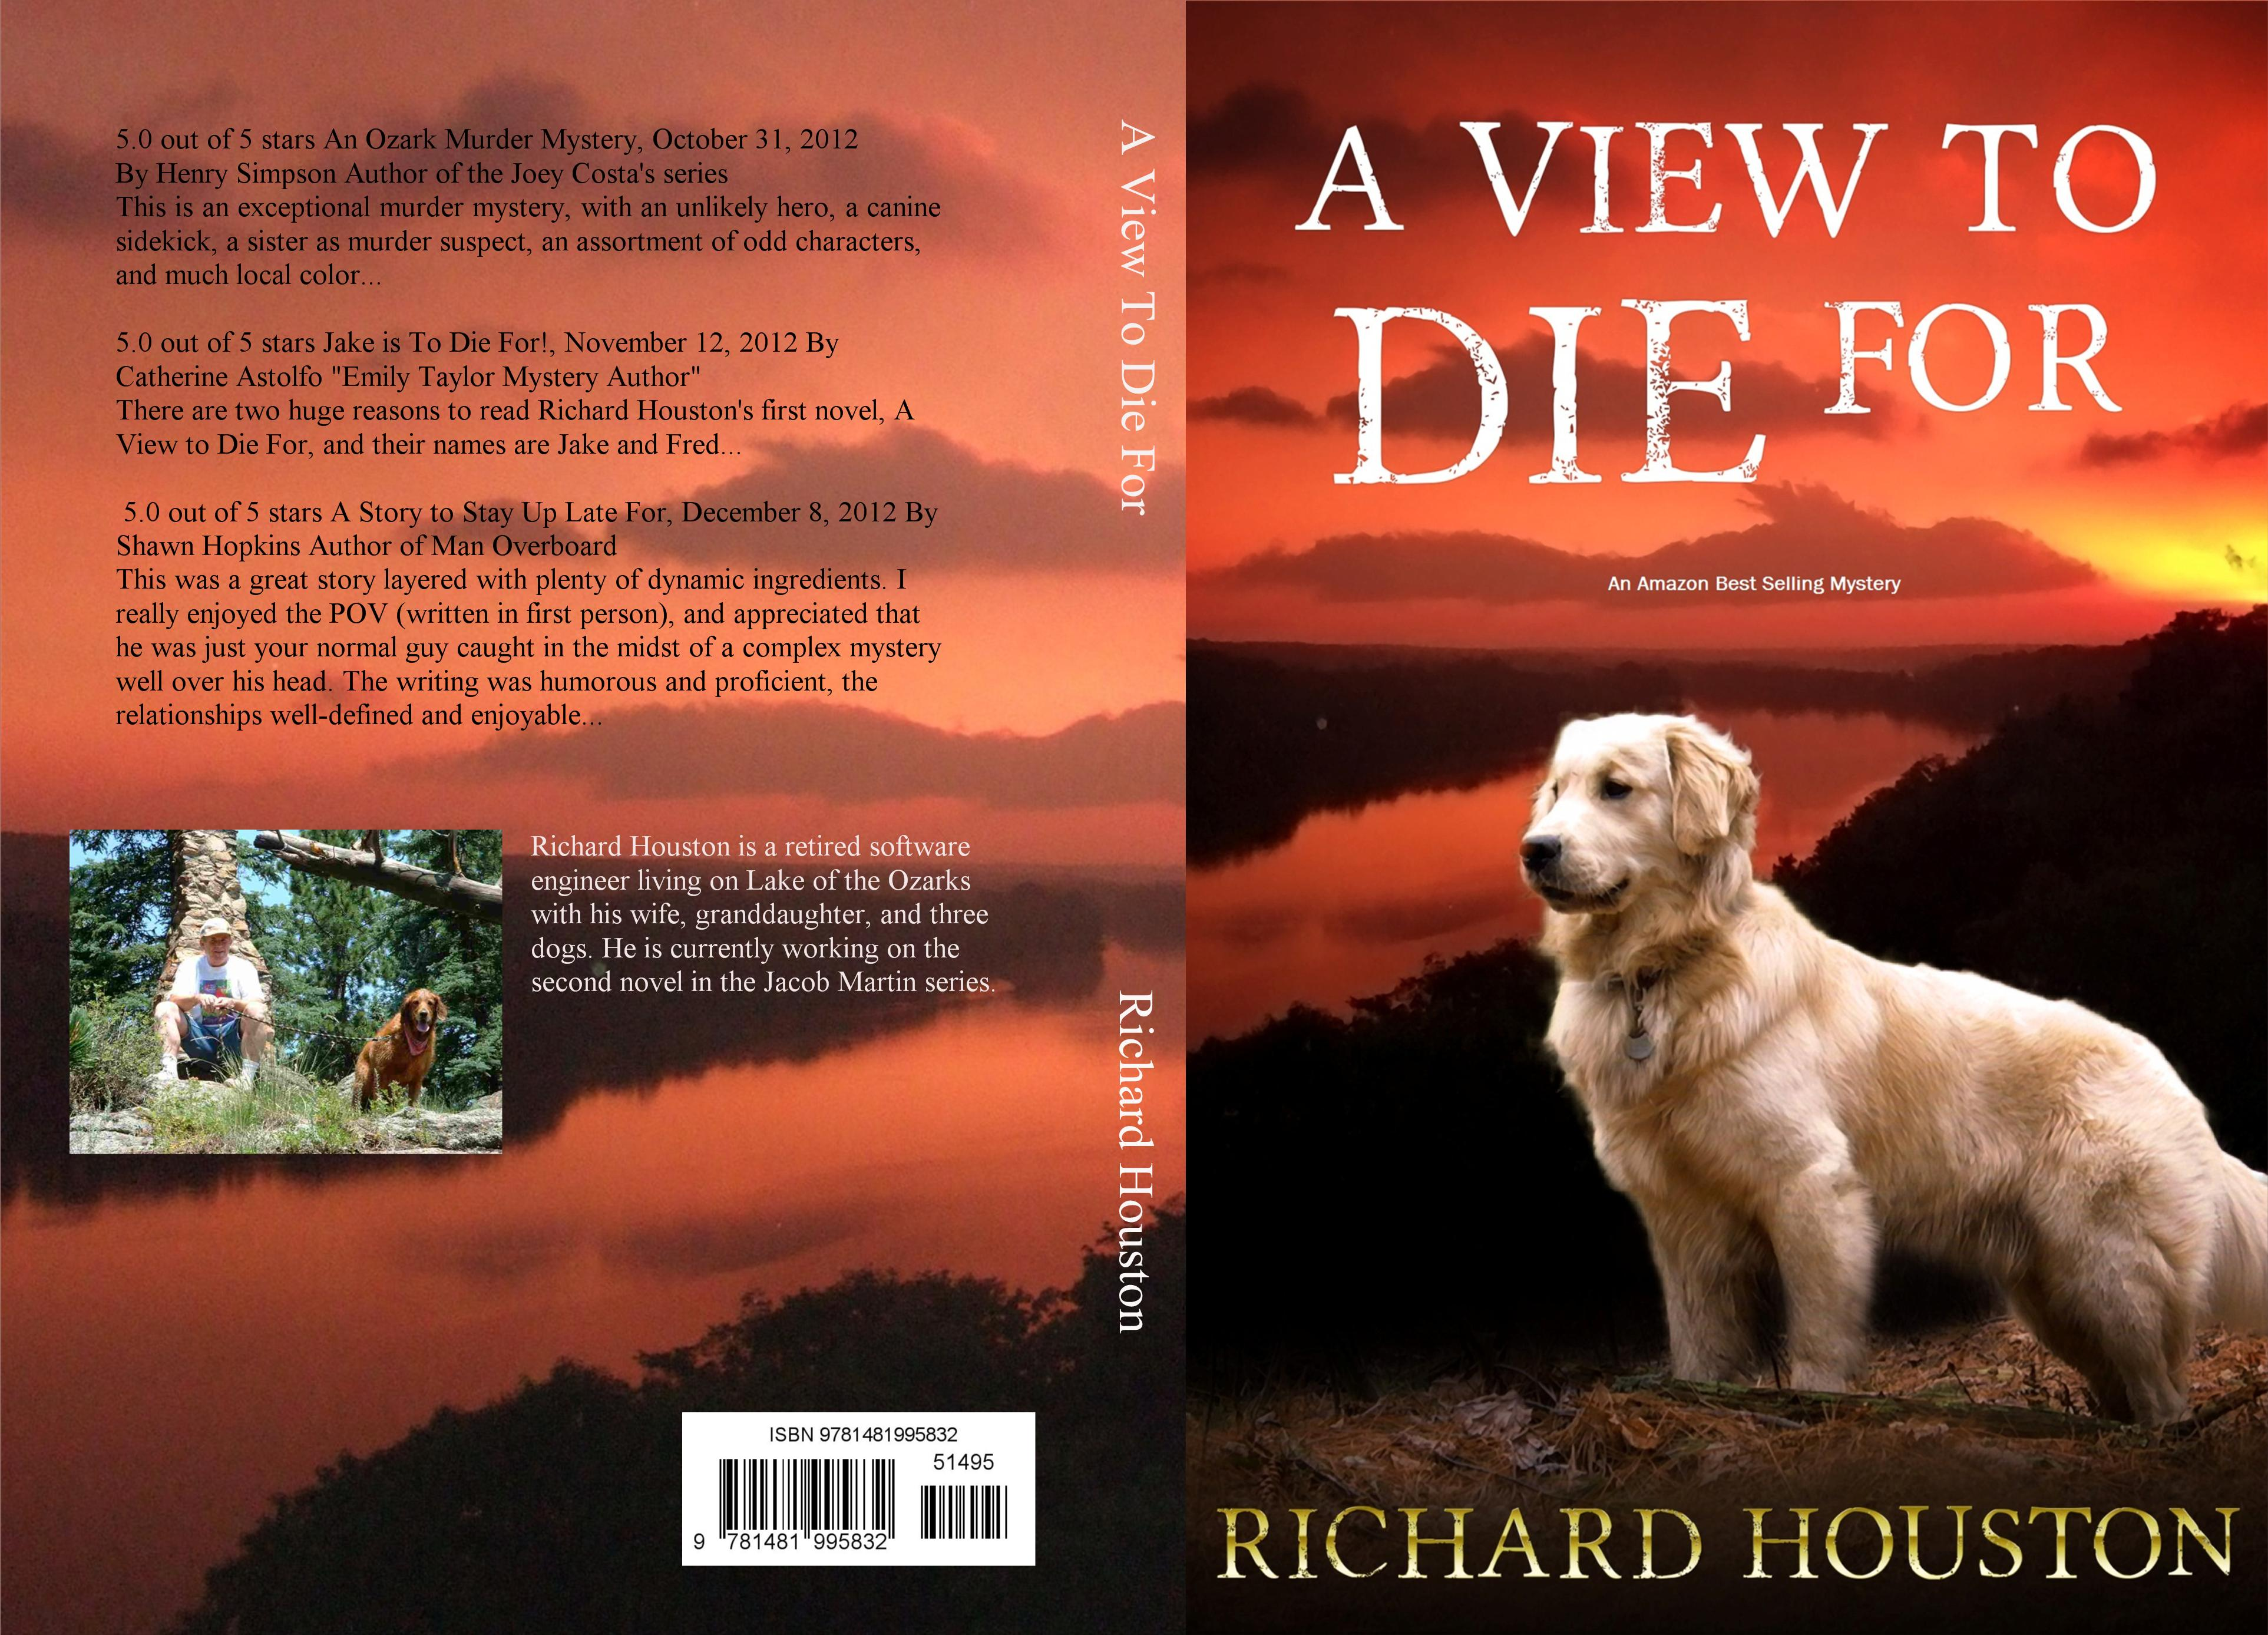 A View To Die For cover image